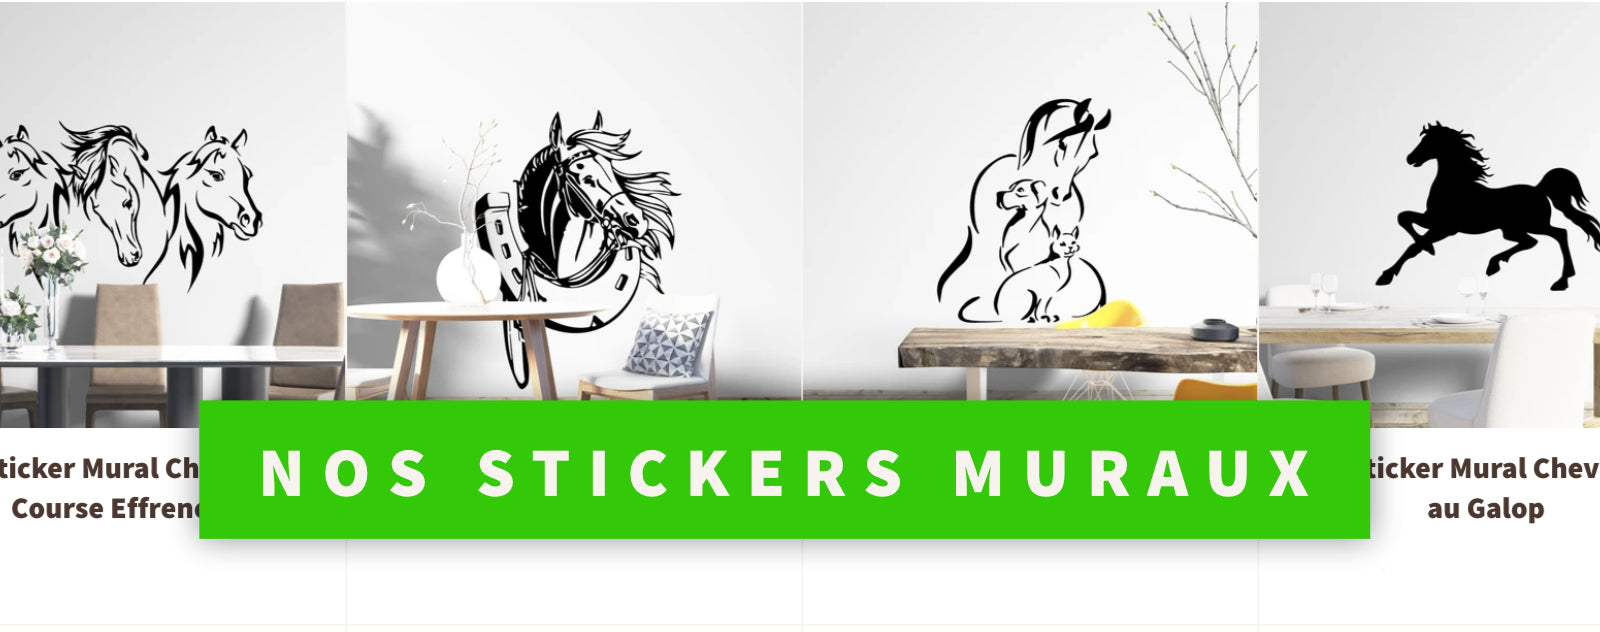 Nos stickers muraux